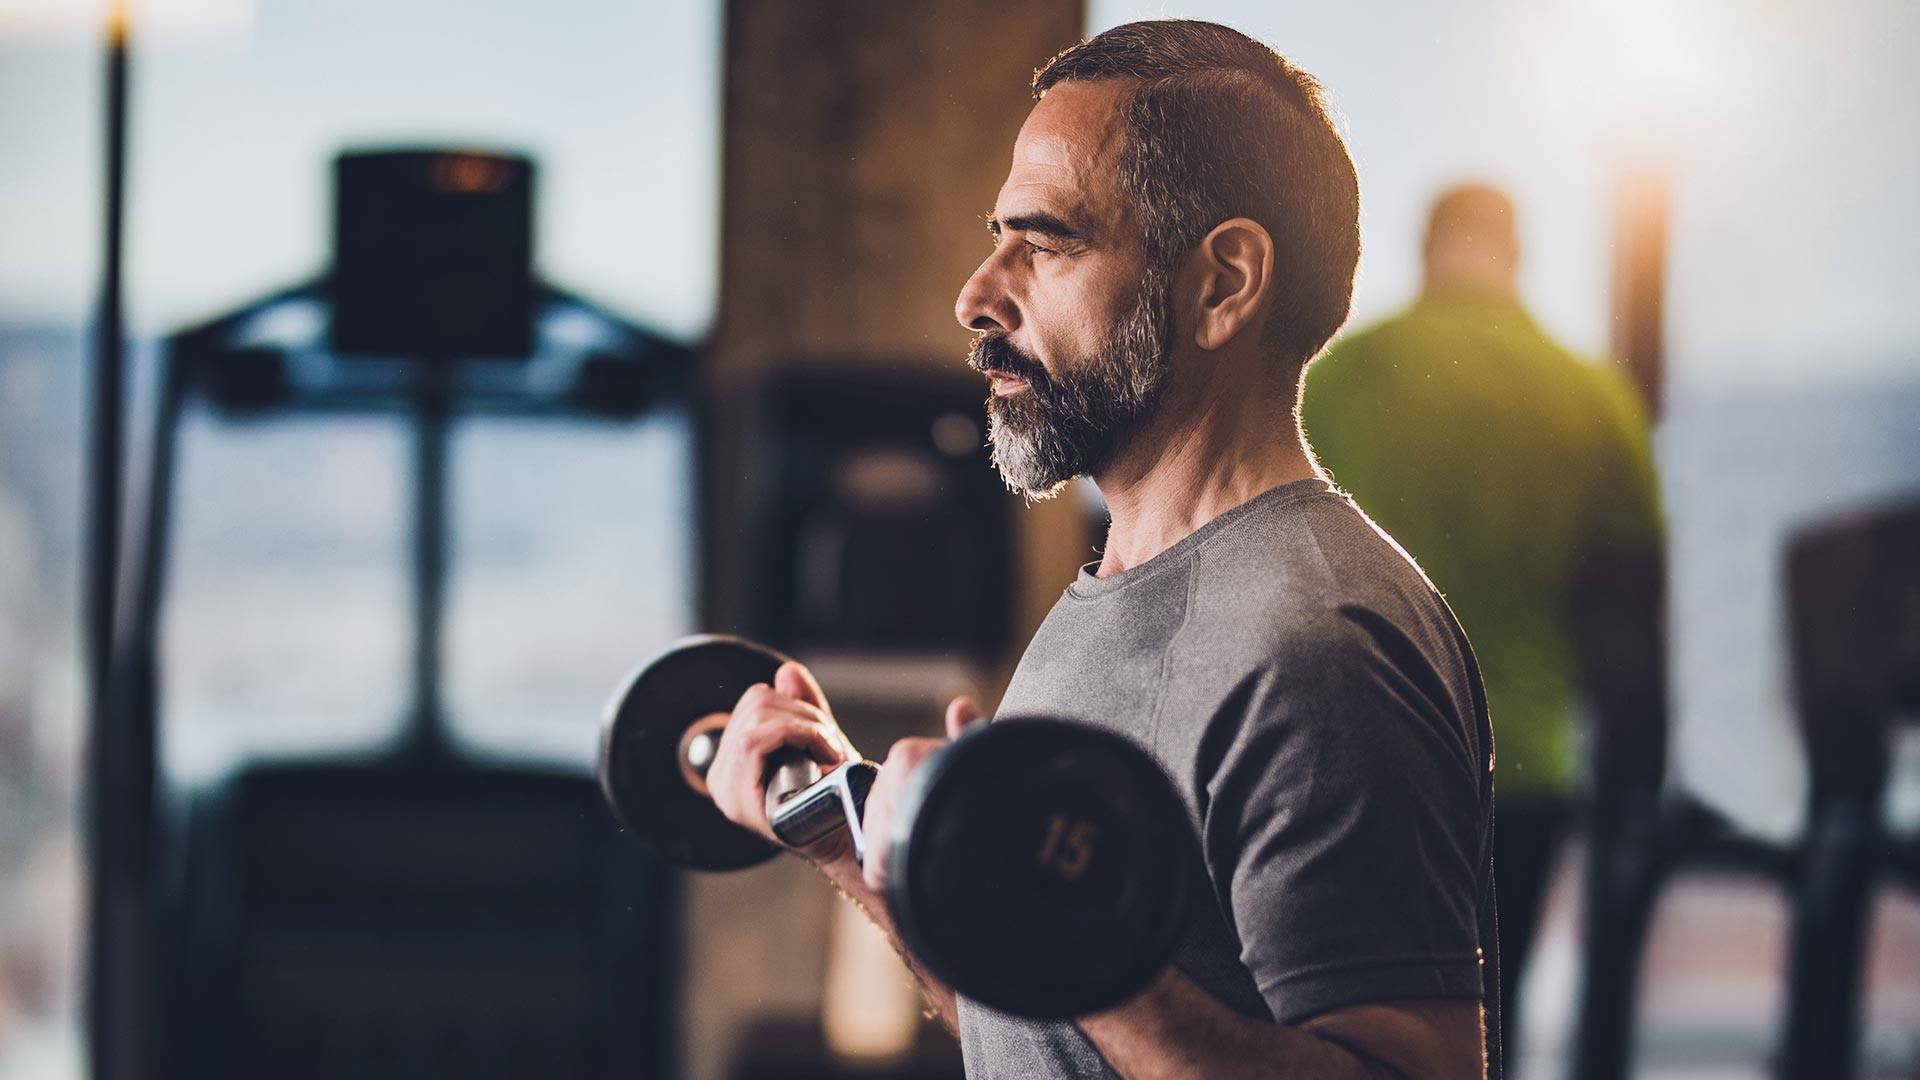 How To Build Muscle Over 50